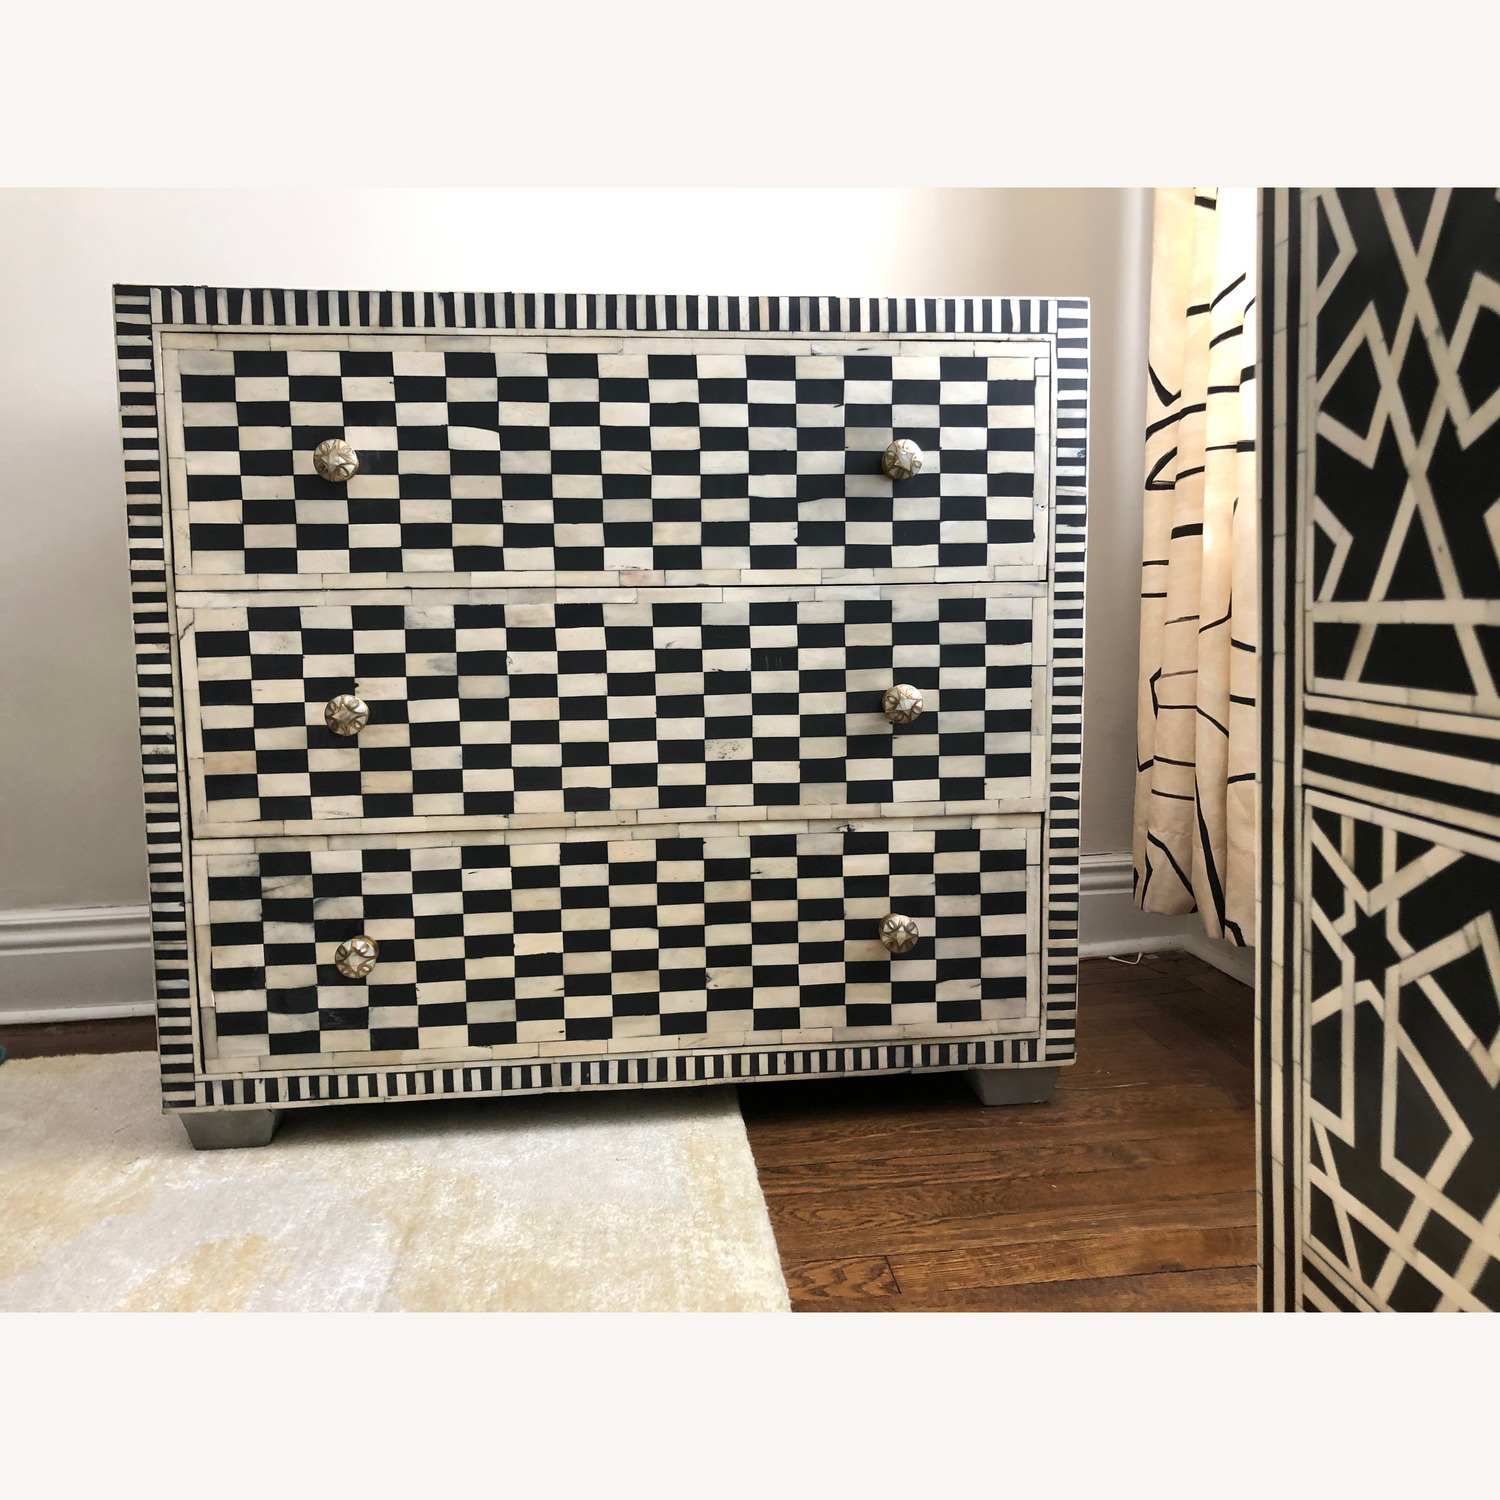 Inlay Moroccan Style Dresser